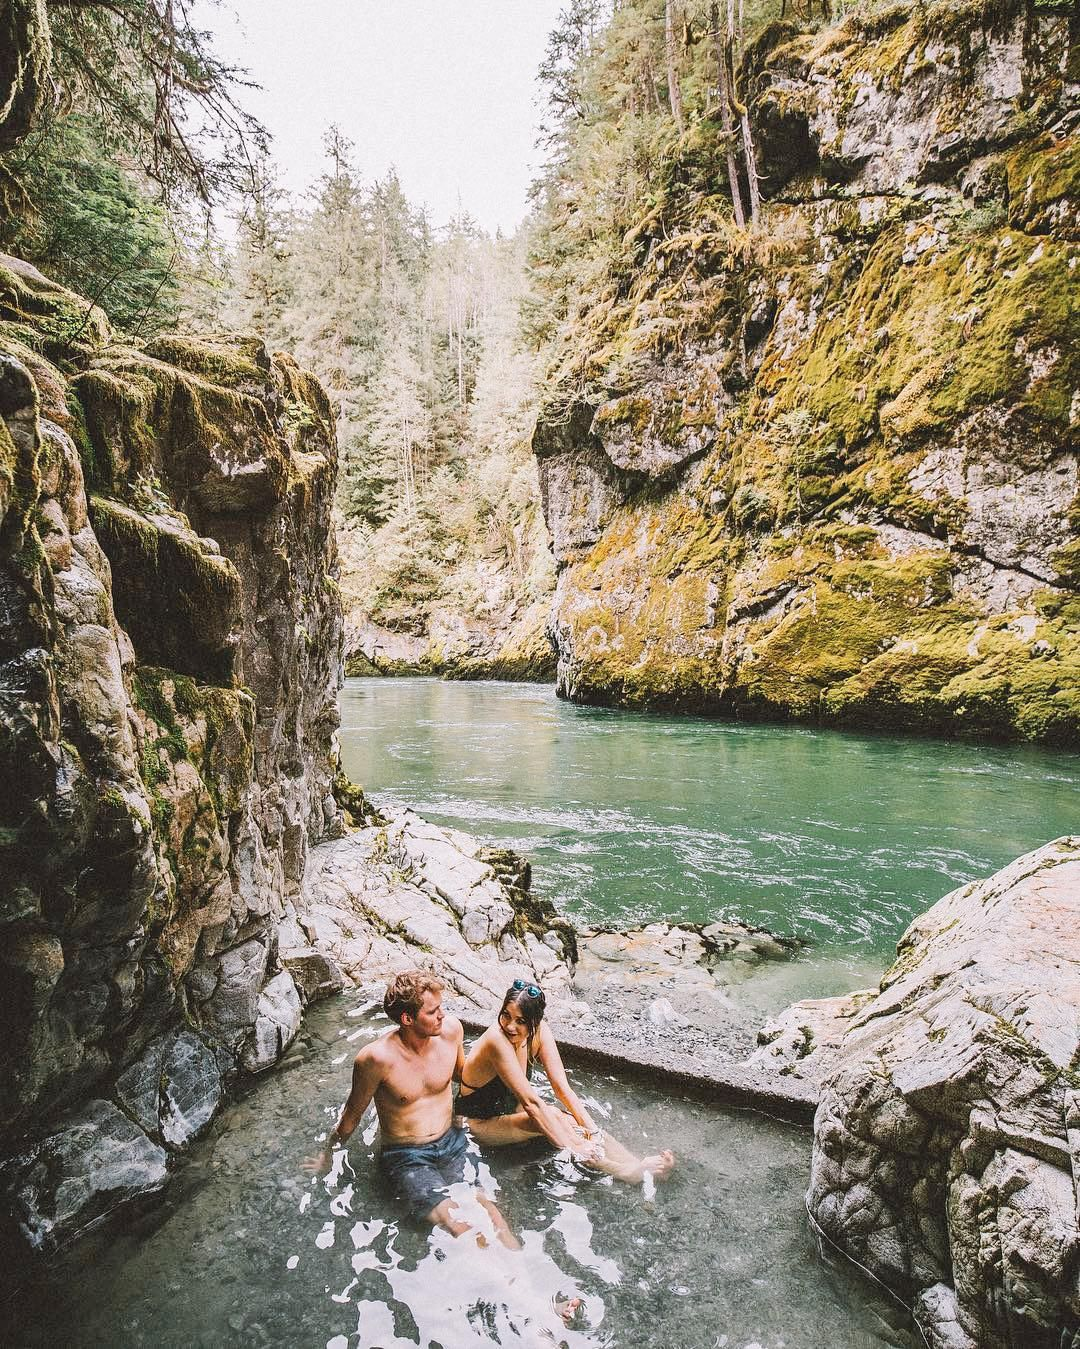 27 outdoor hot springs tubs pools to warm up your